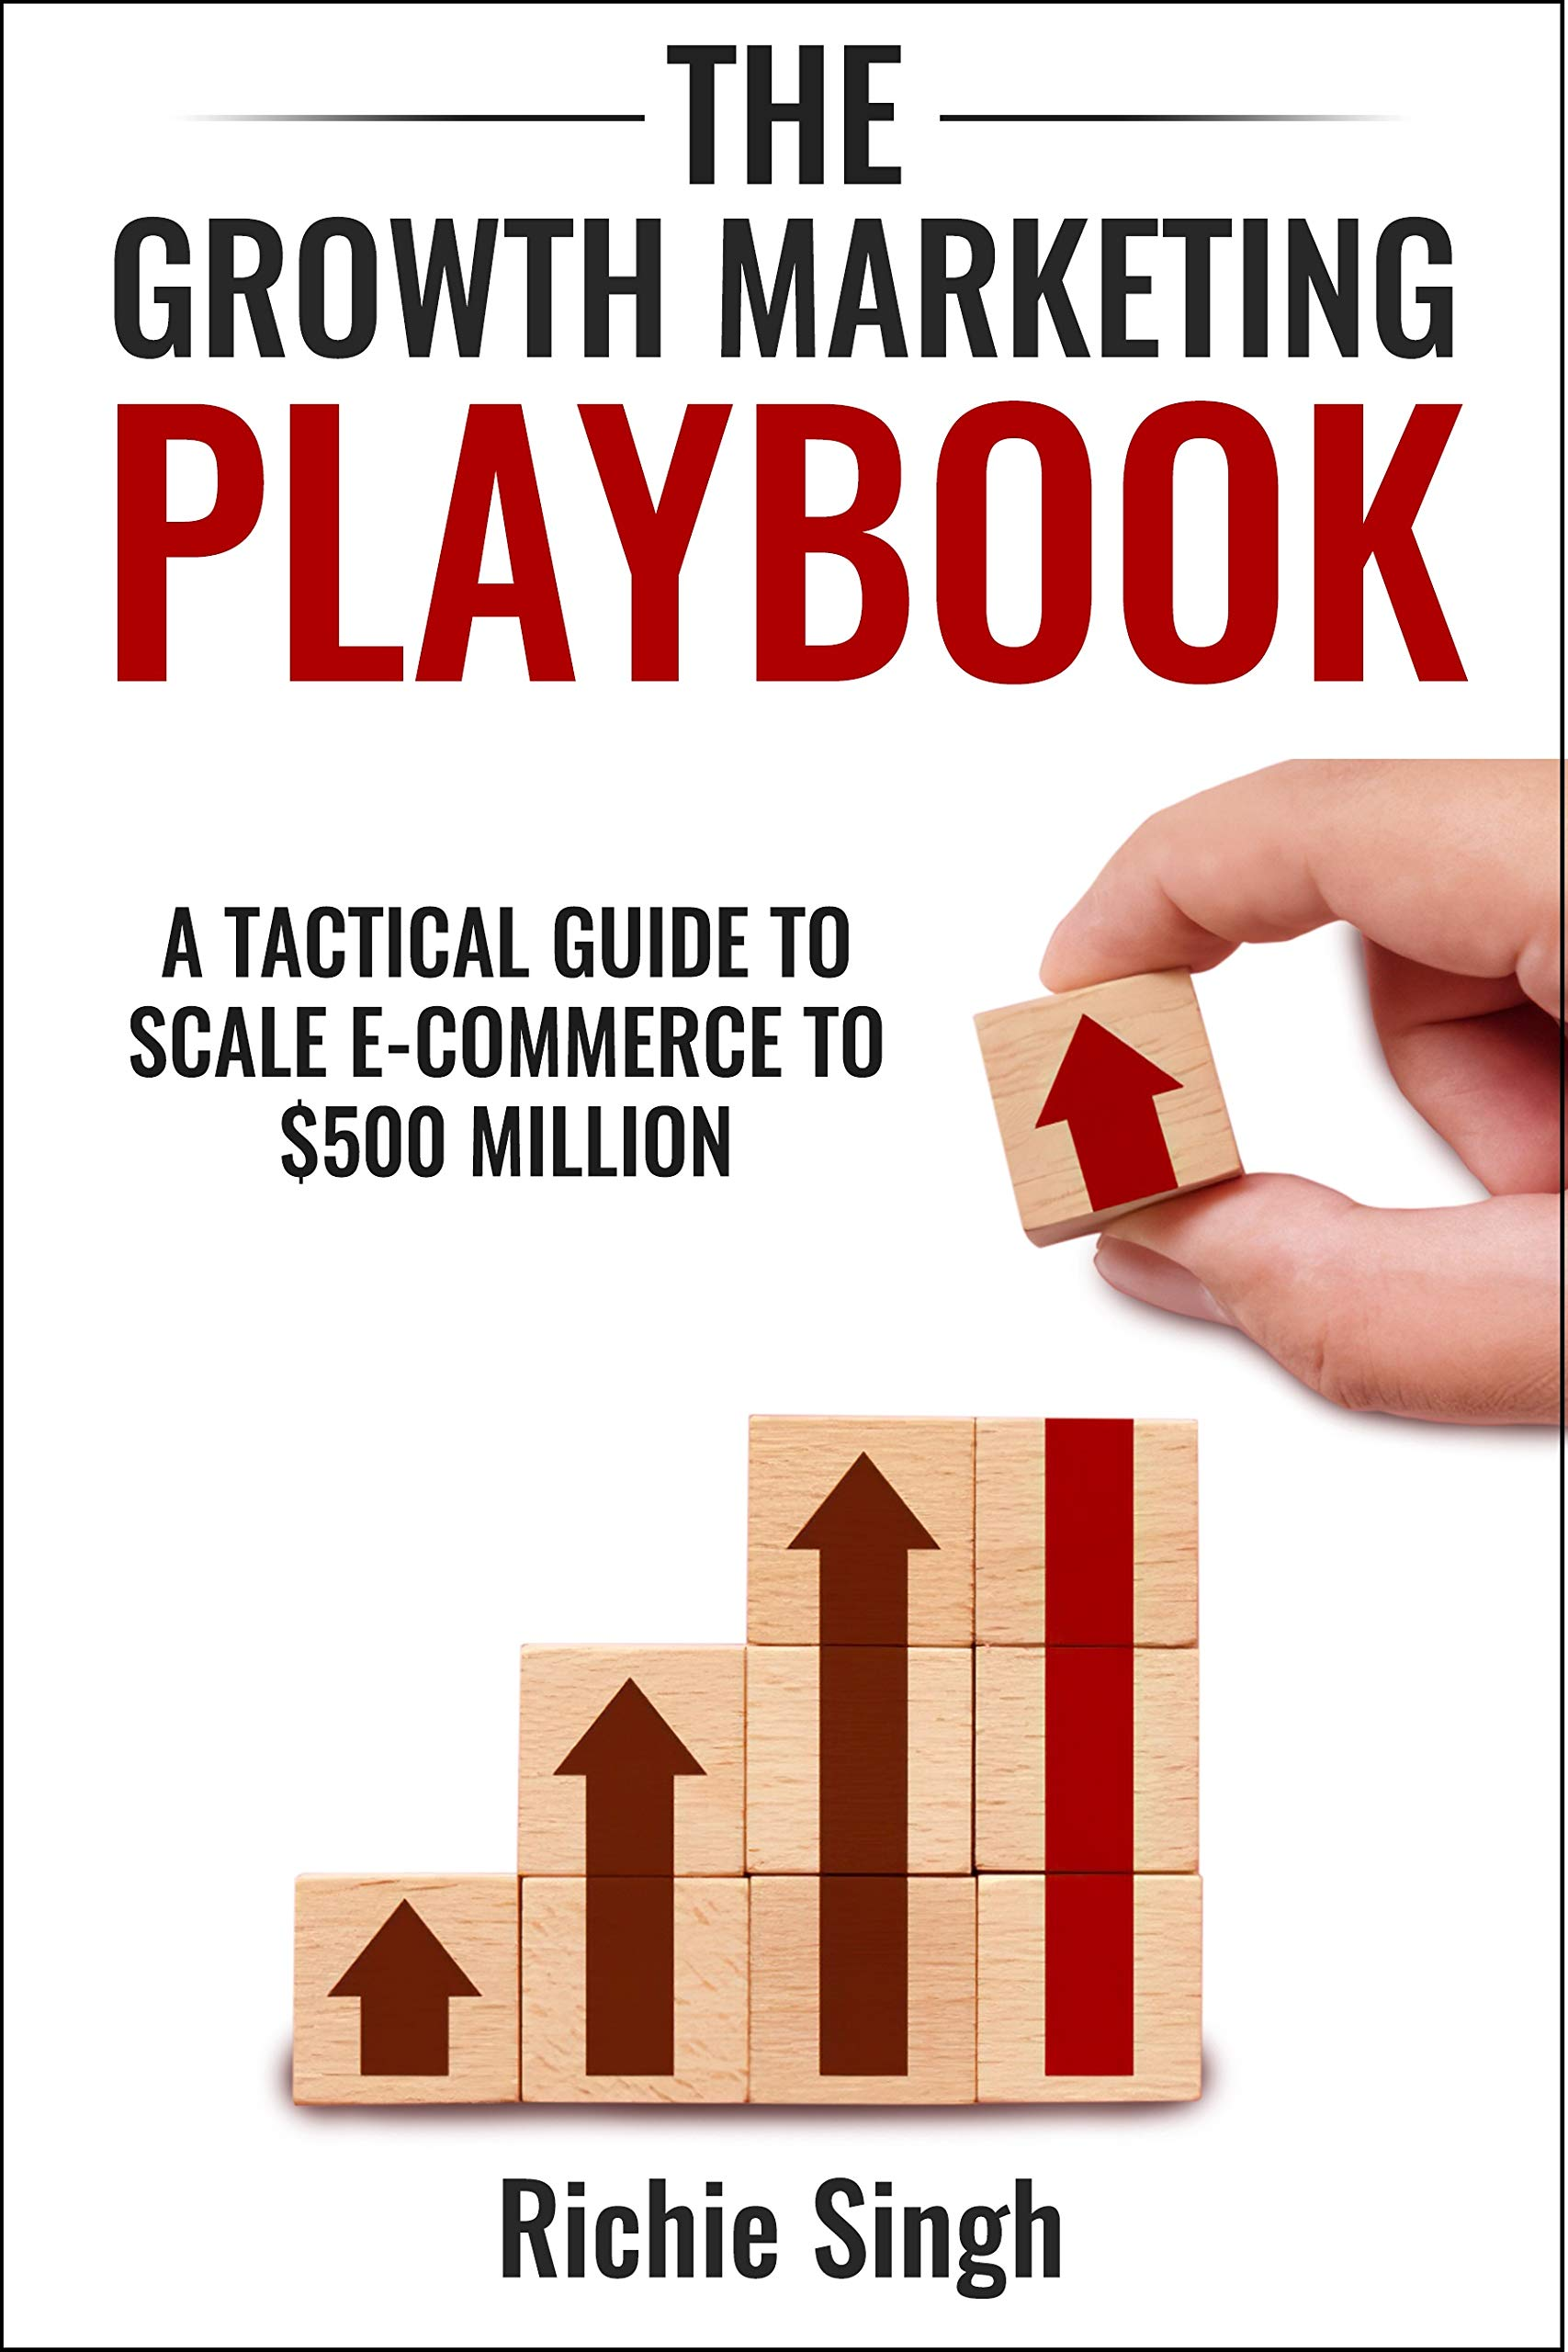 Download The Growth Marketing Playbook: A Tactical Guide To Scale E-commerce To $500 Million (English Edition) 